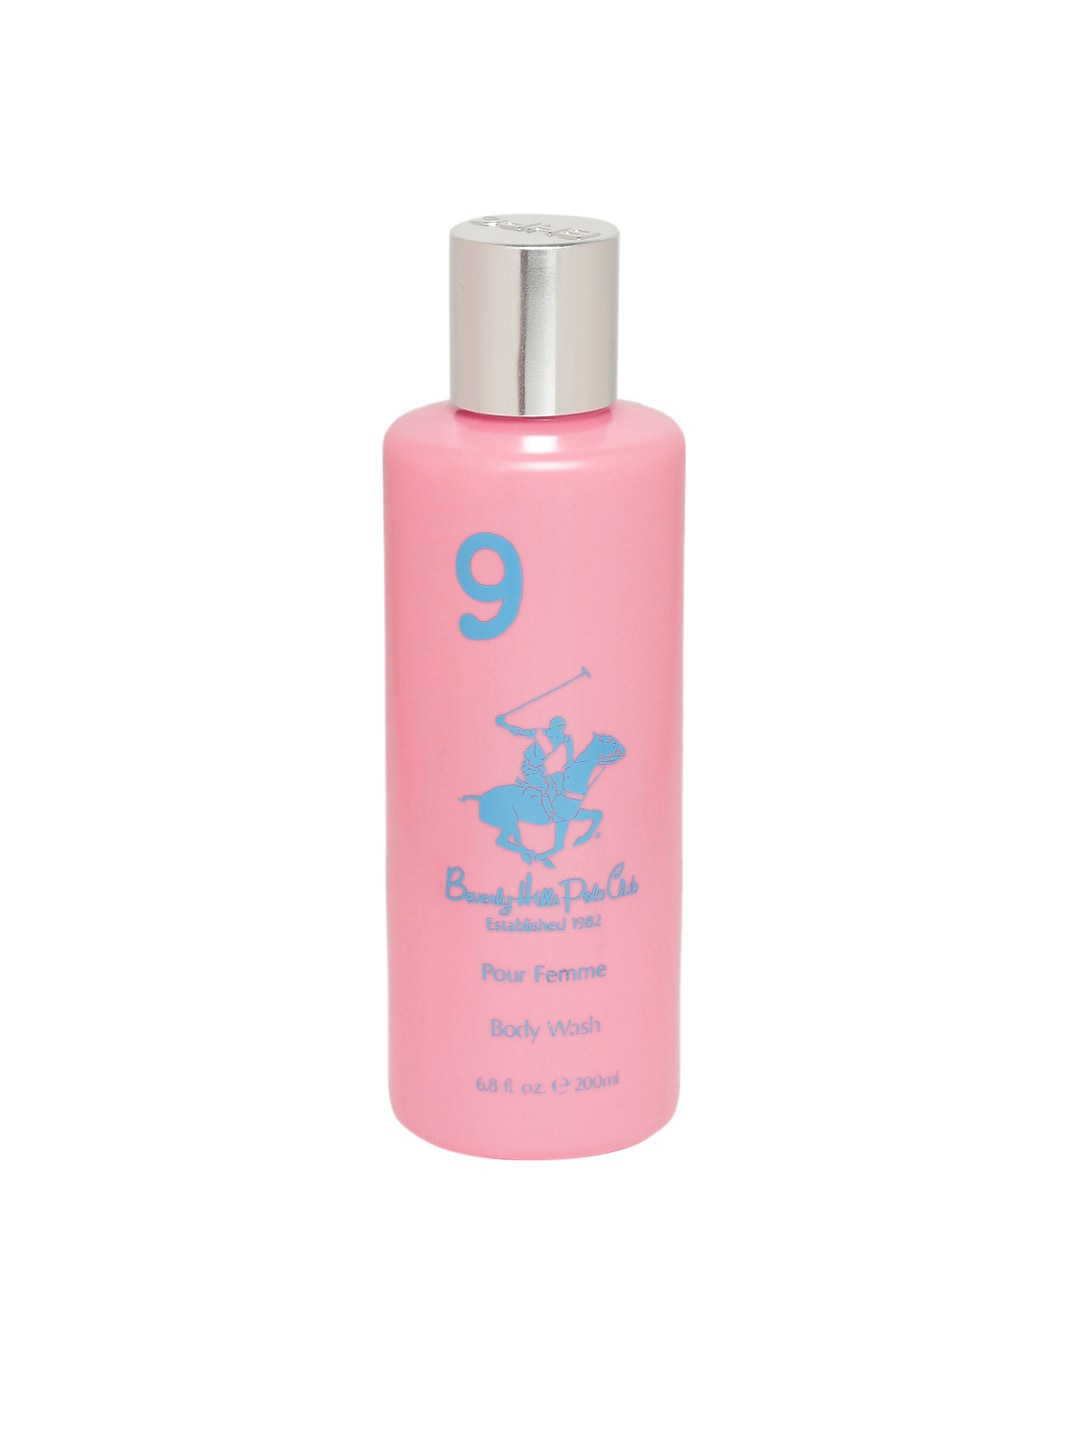 Beverly Polo Hills Women Body Wash 09 image